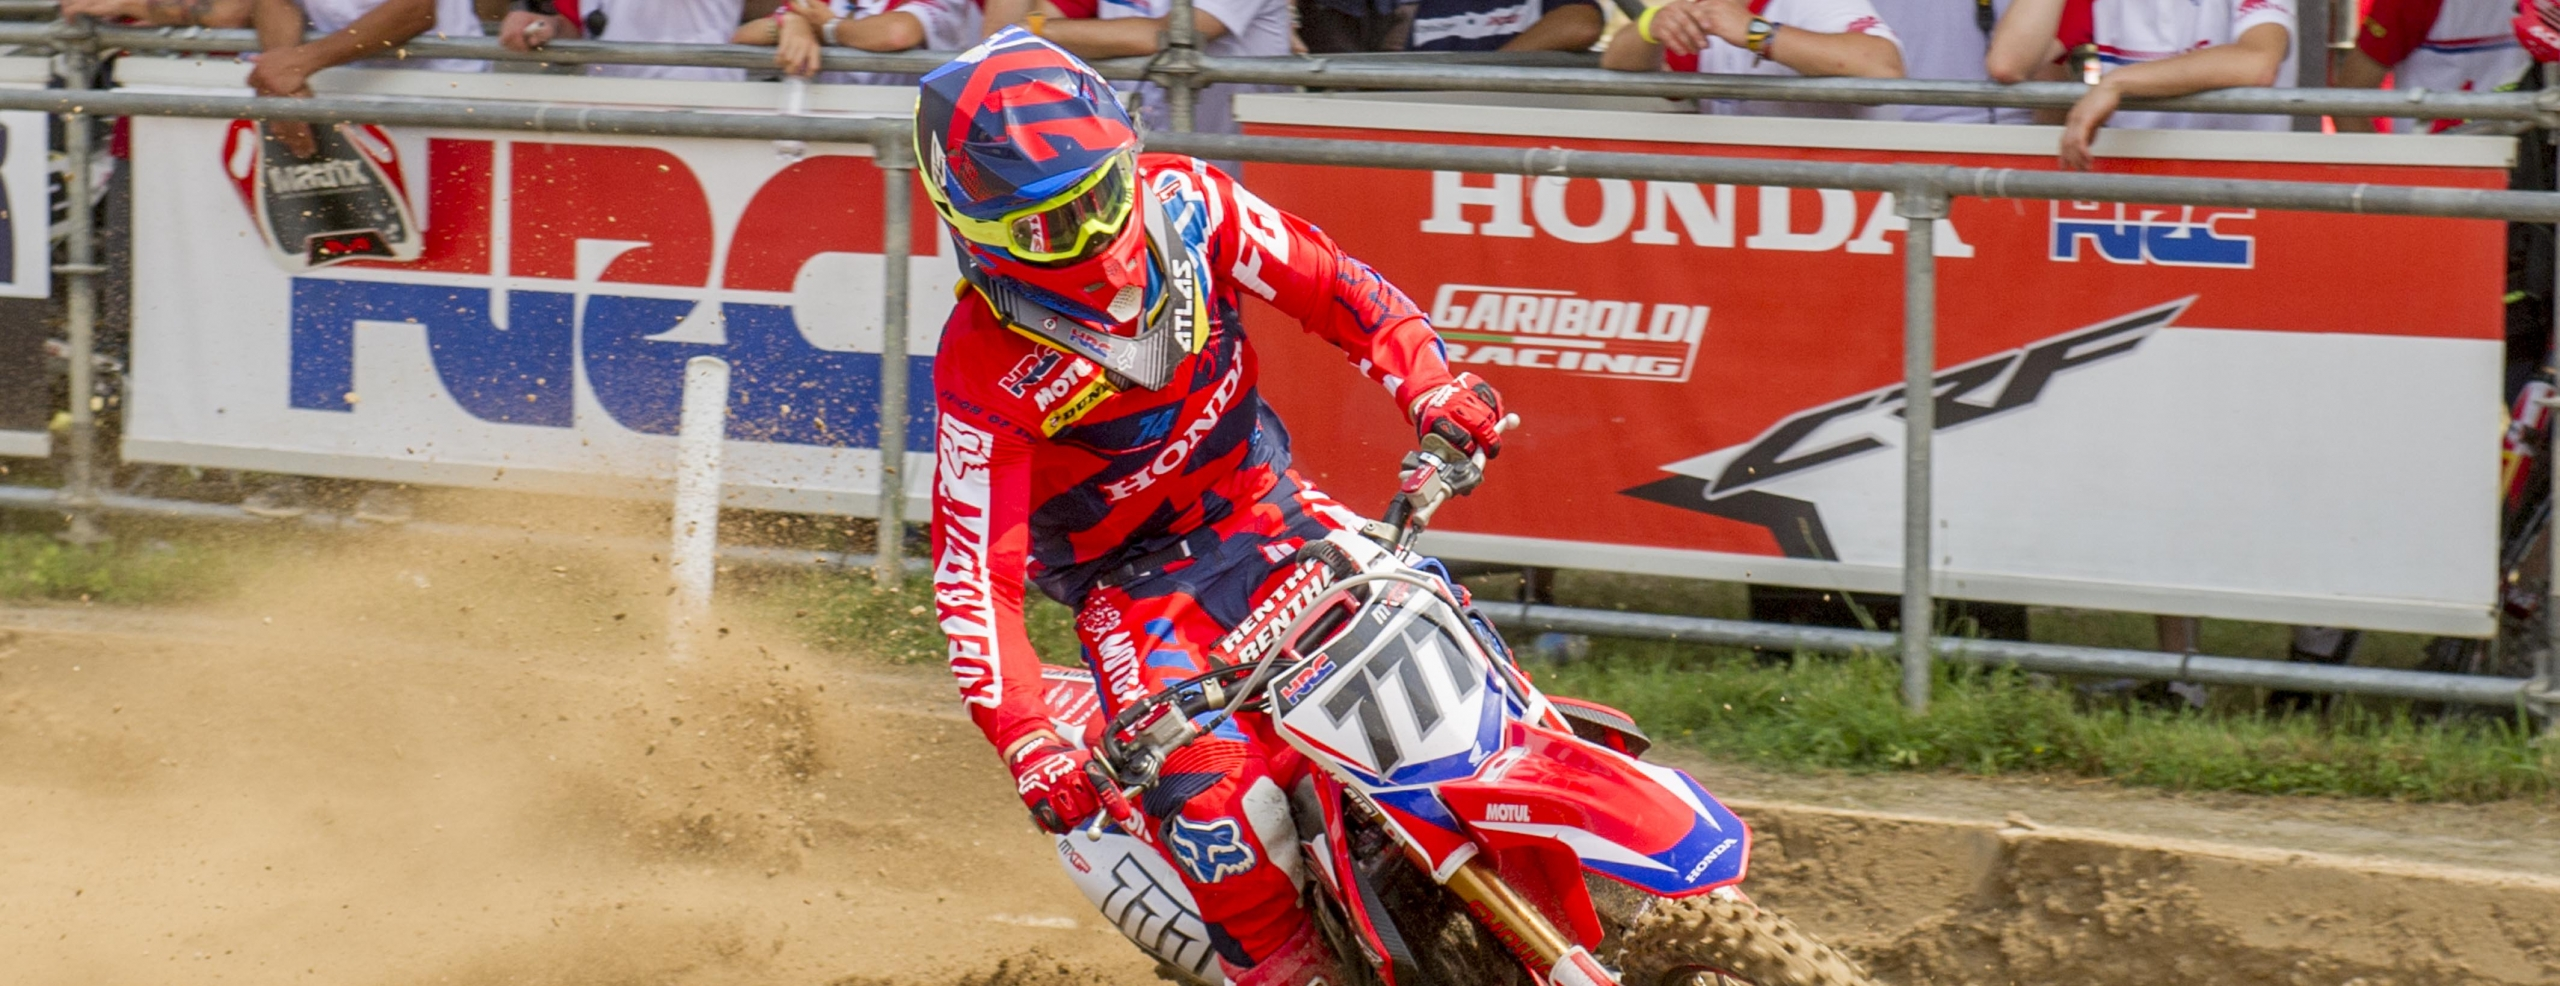 Honda in front again as Bobryshev wins Mantova qualifying